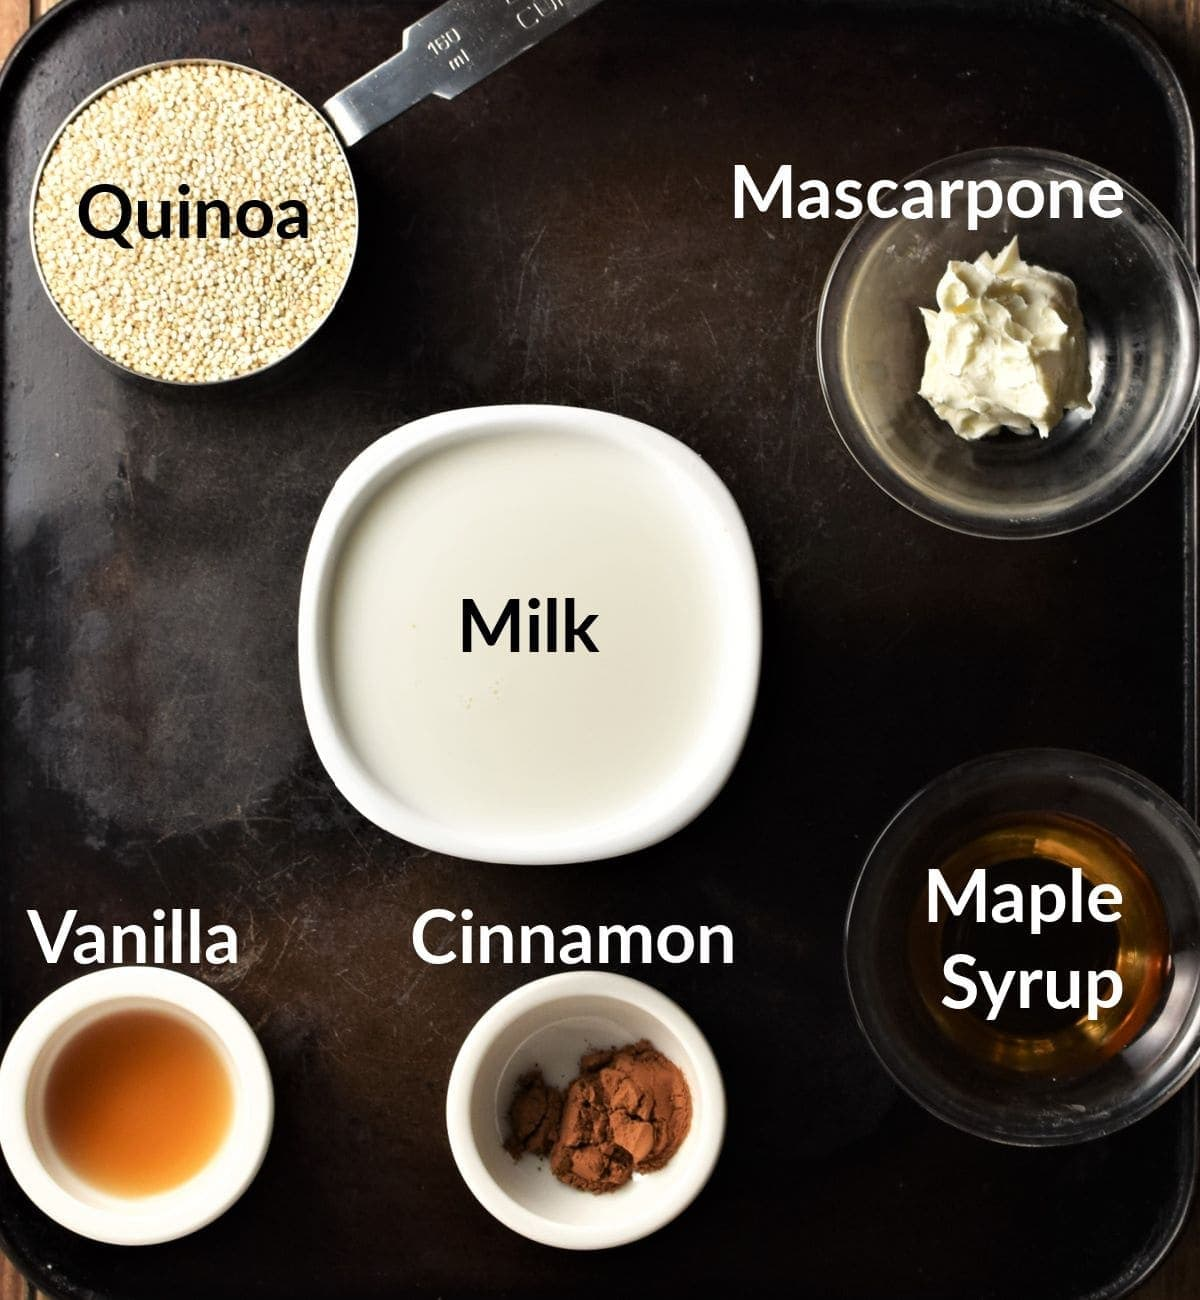 Quinoa pudding ingredients in individual dishes.